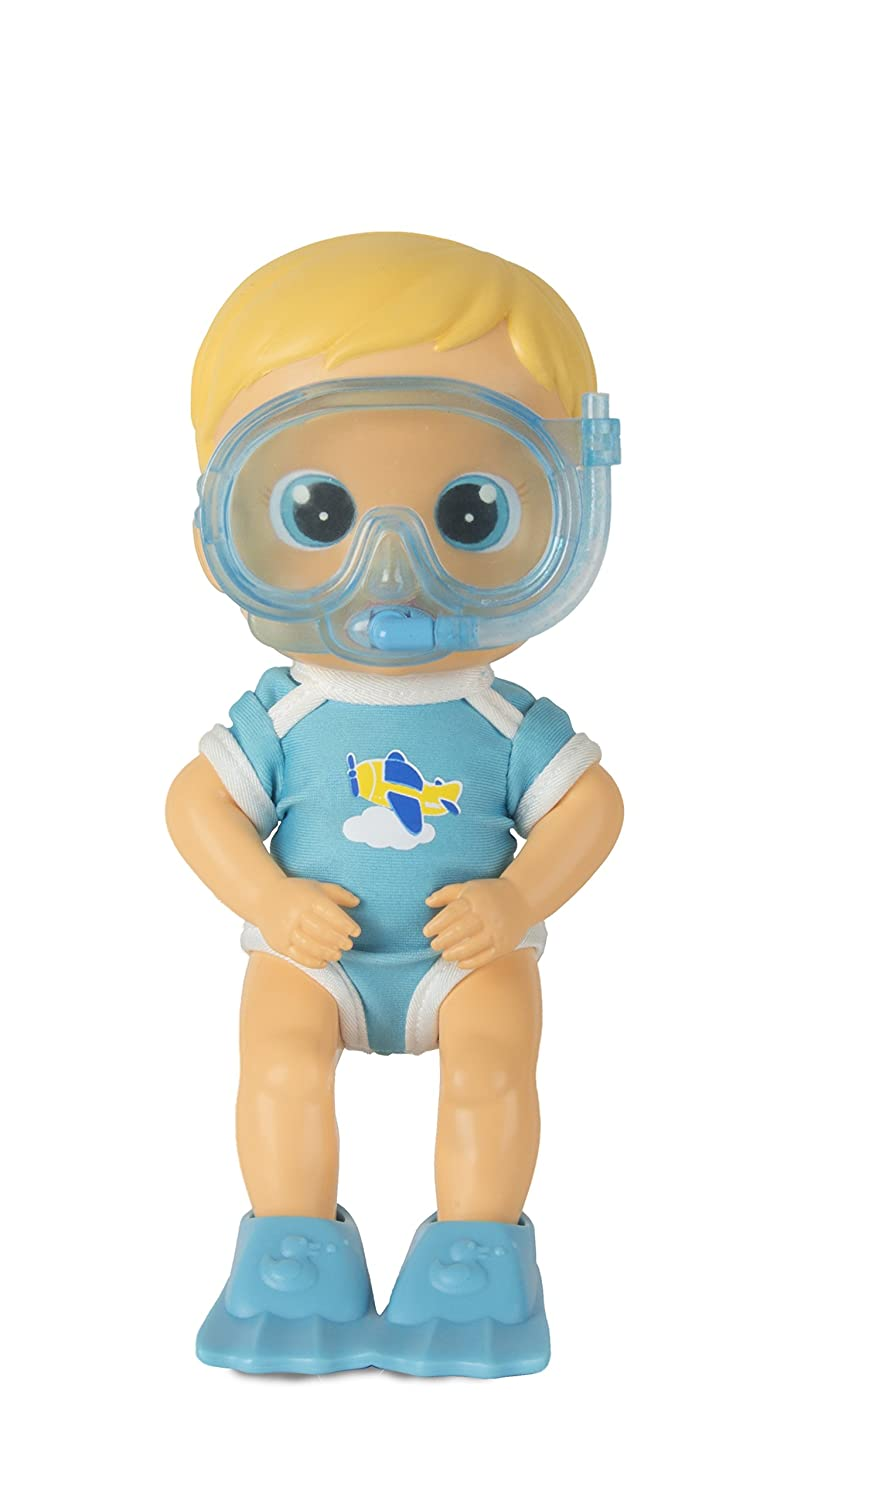 IMC 95632 Bloopies Baby Max - Blue IMC Toys